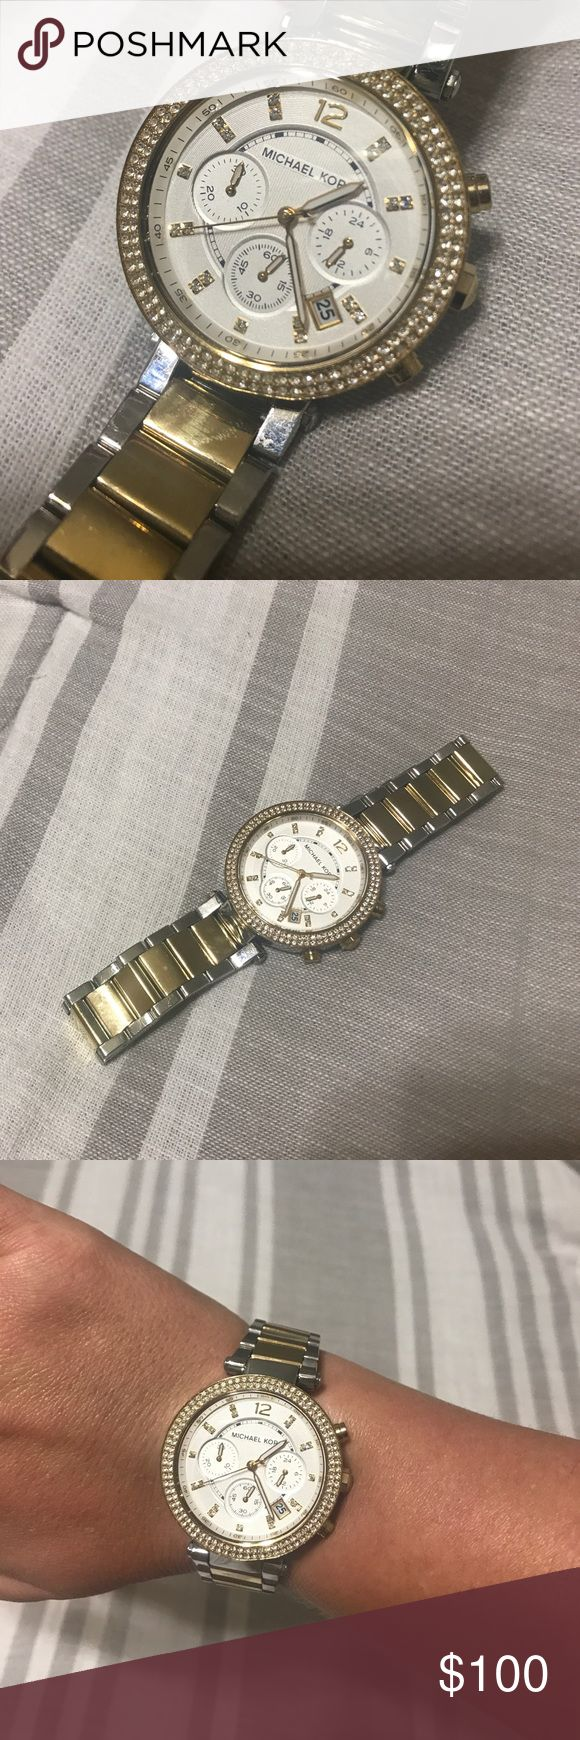 Michael Kors Women's Gold and Silver Watch Stunning gold and silver authentic women's Michael Kors watch! Model MK-5626! Watch has been worn and does have some scratches from normal wear and tear Michael Kors Accessories Watches